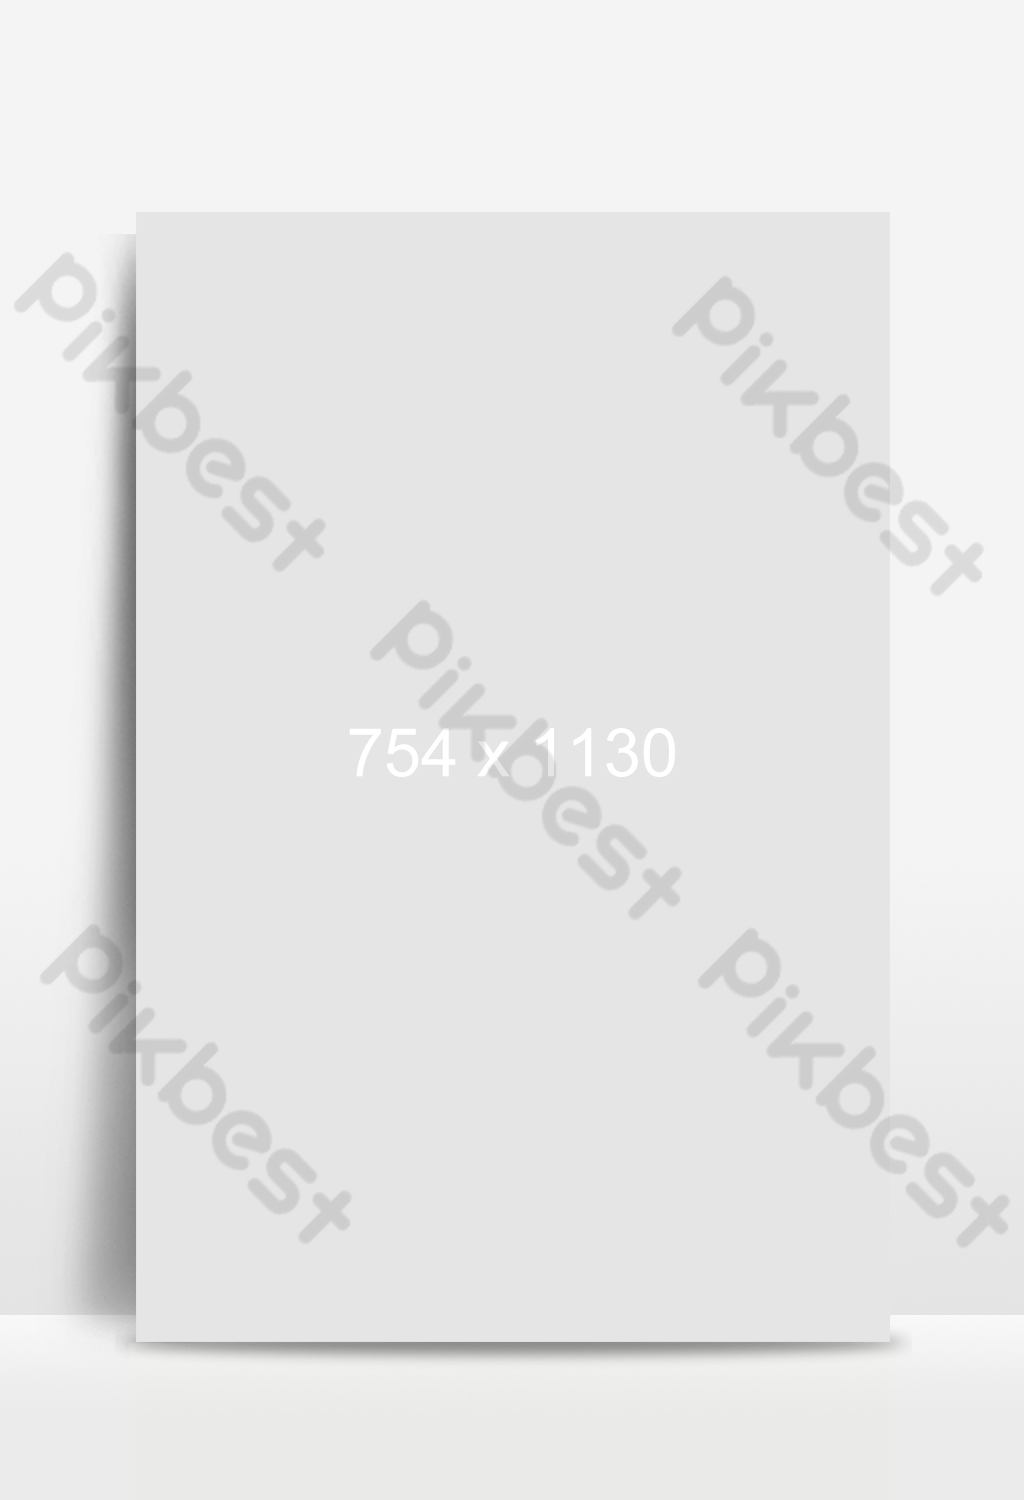 Office desk chair background  Backgrounds PSD Free Download - Pikbest